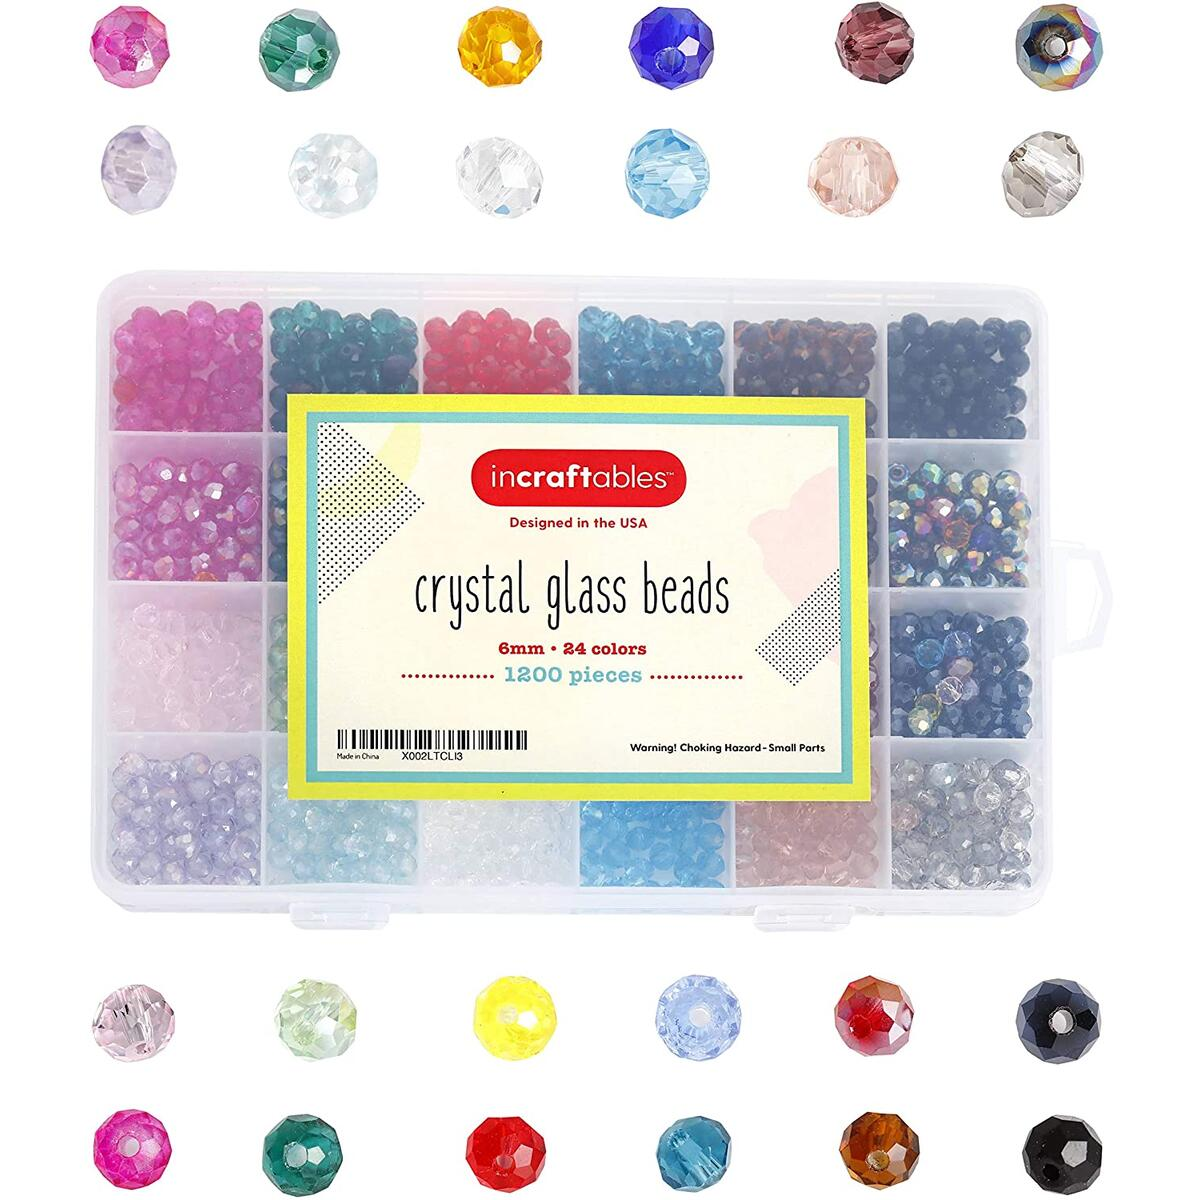 Incraftables Crystal Glass Beads 24 Colors 1200pcs Kit for Jewelry Making, Hair Accessories, & DIY Bracelets.